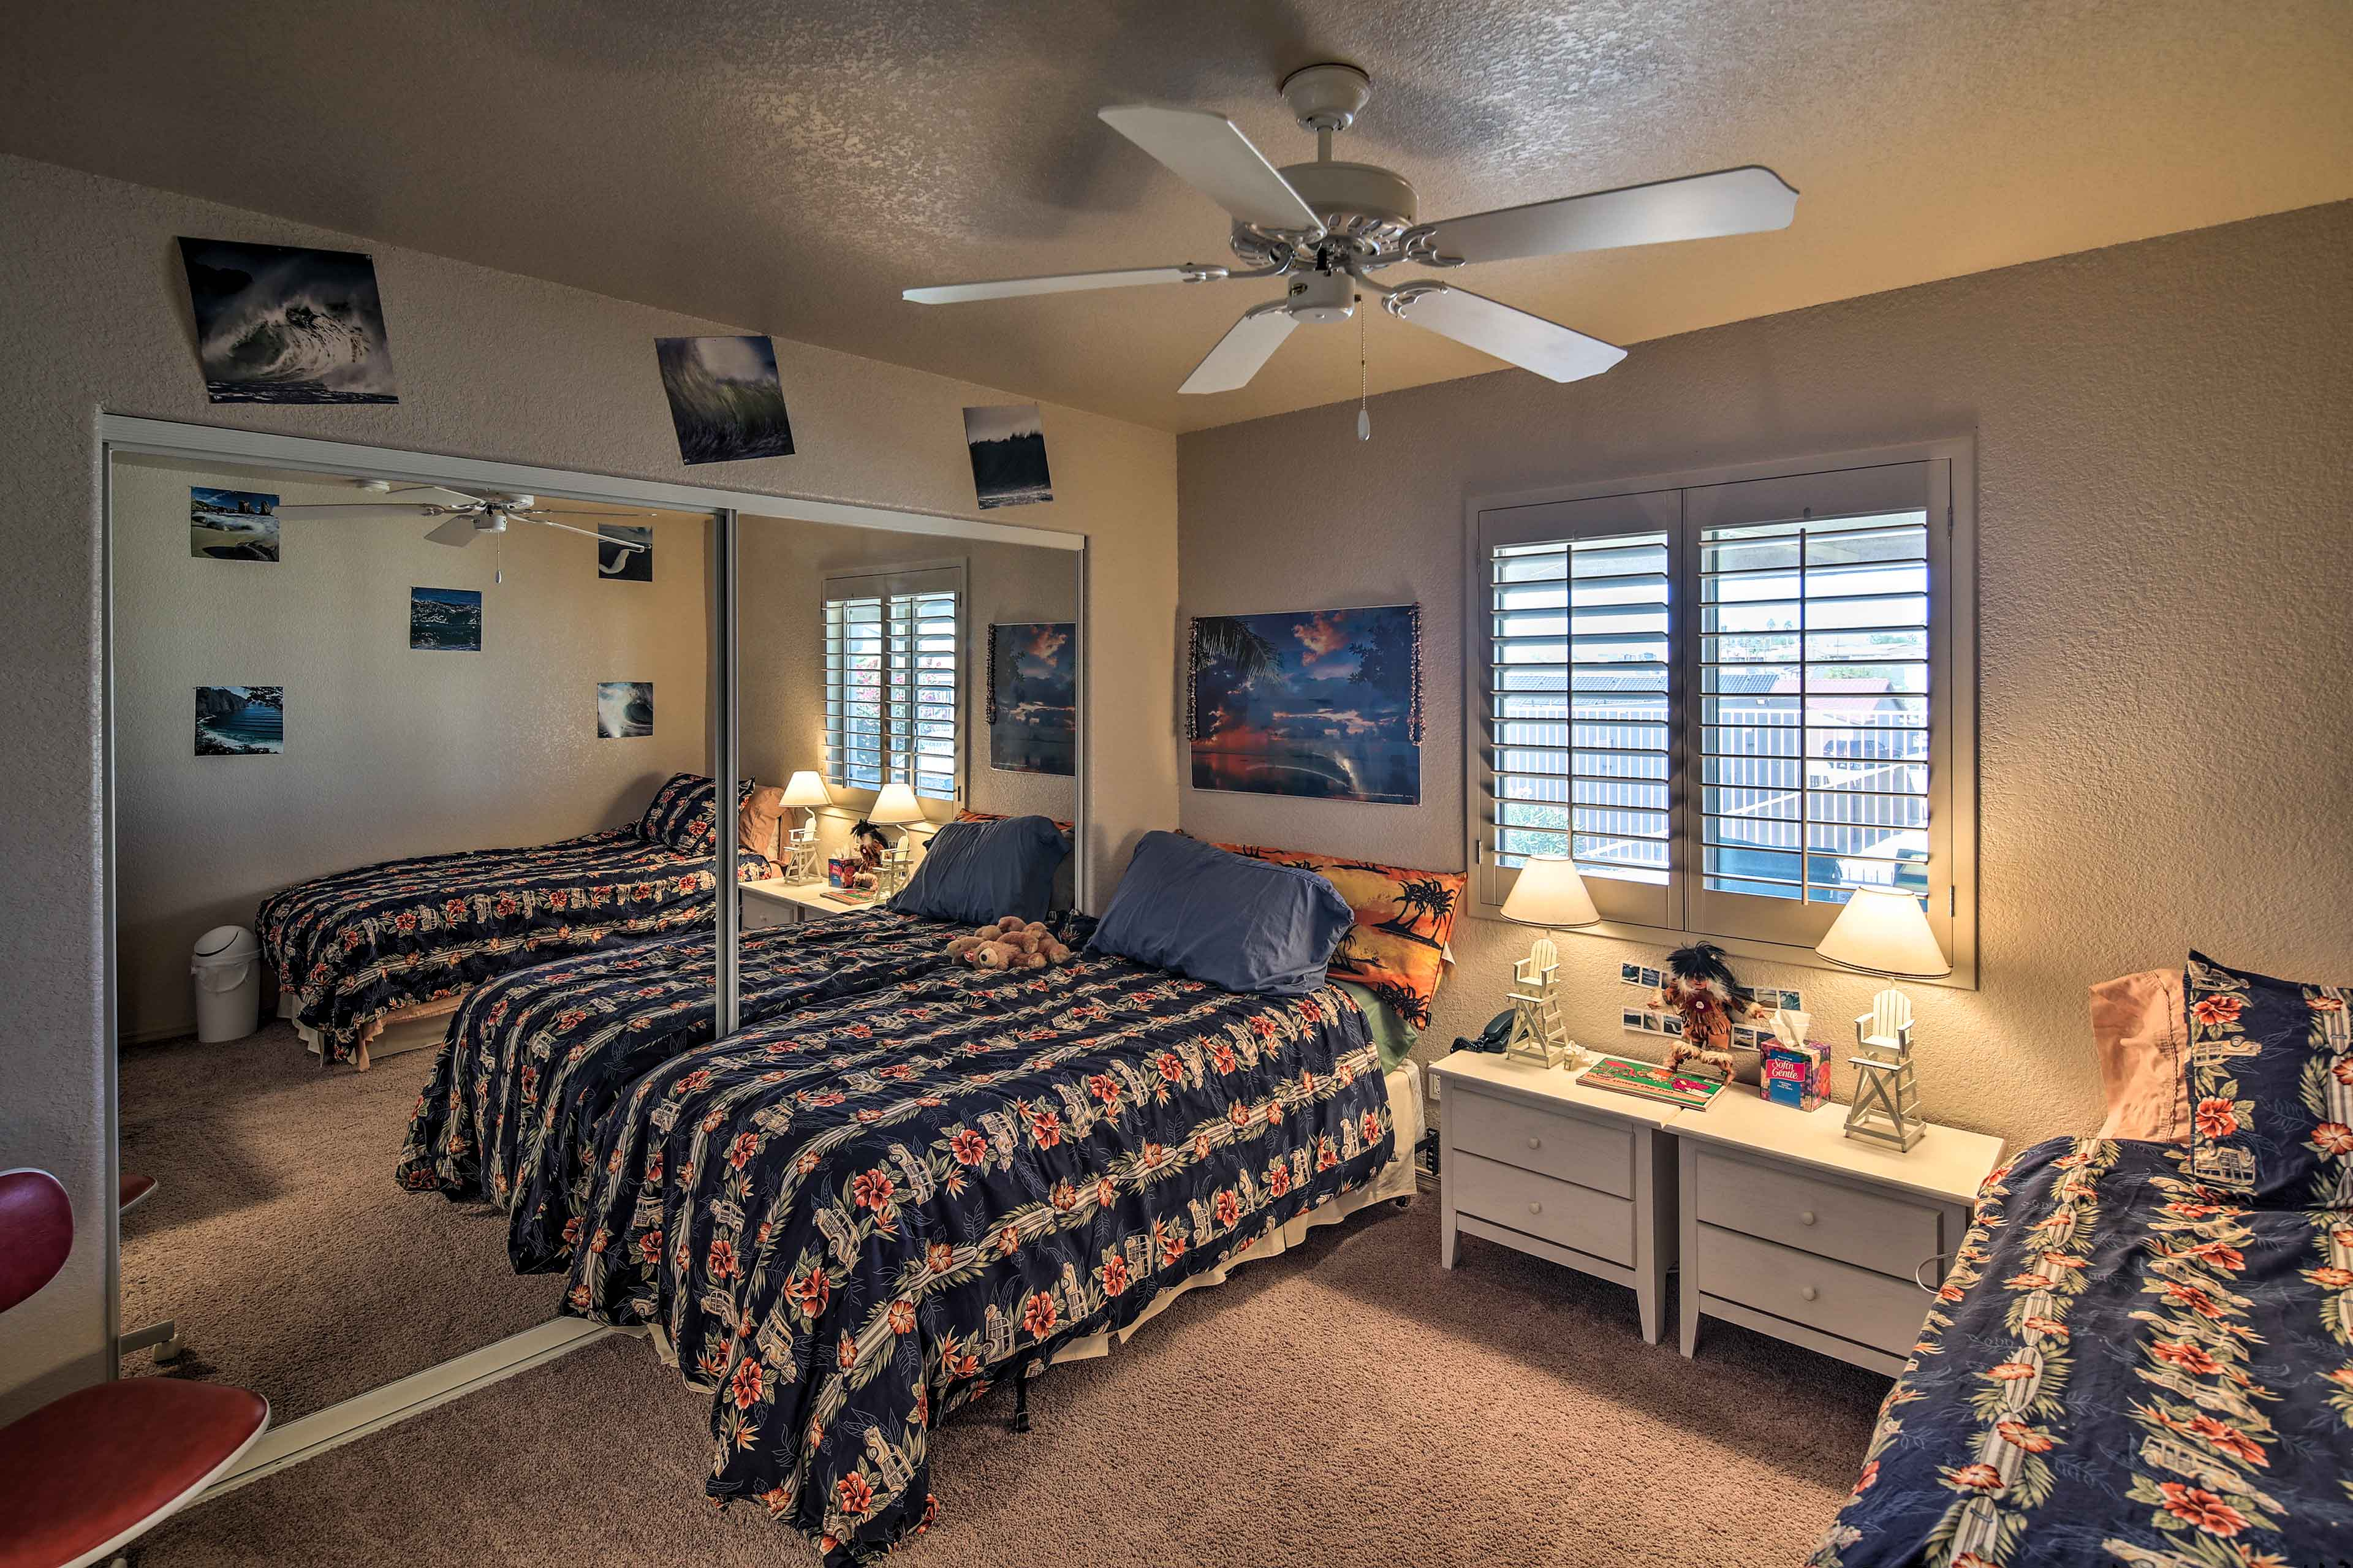 The kiddos can claim this bedroom!